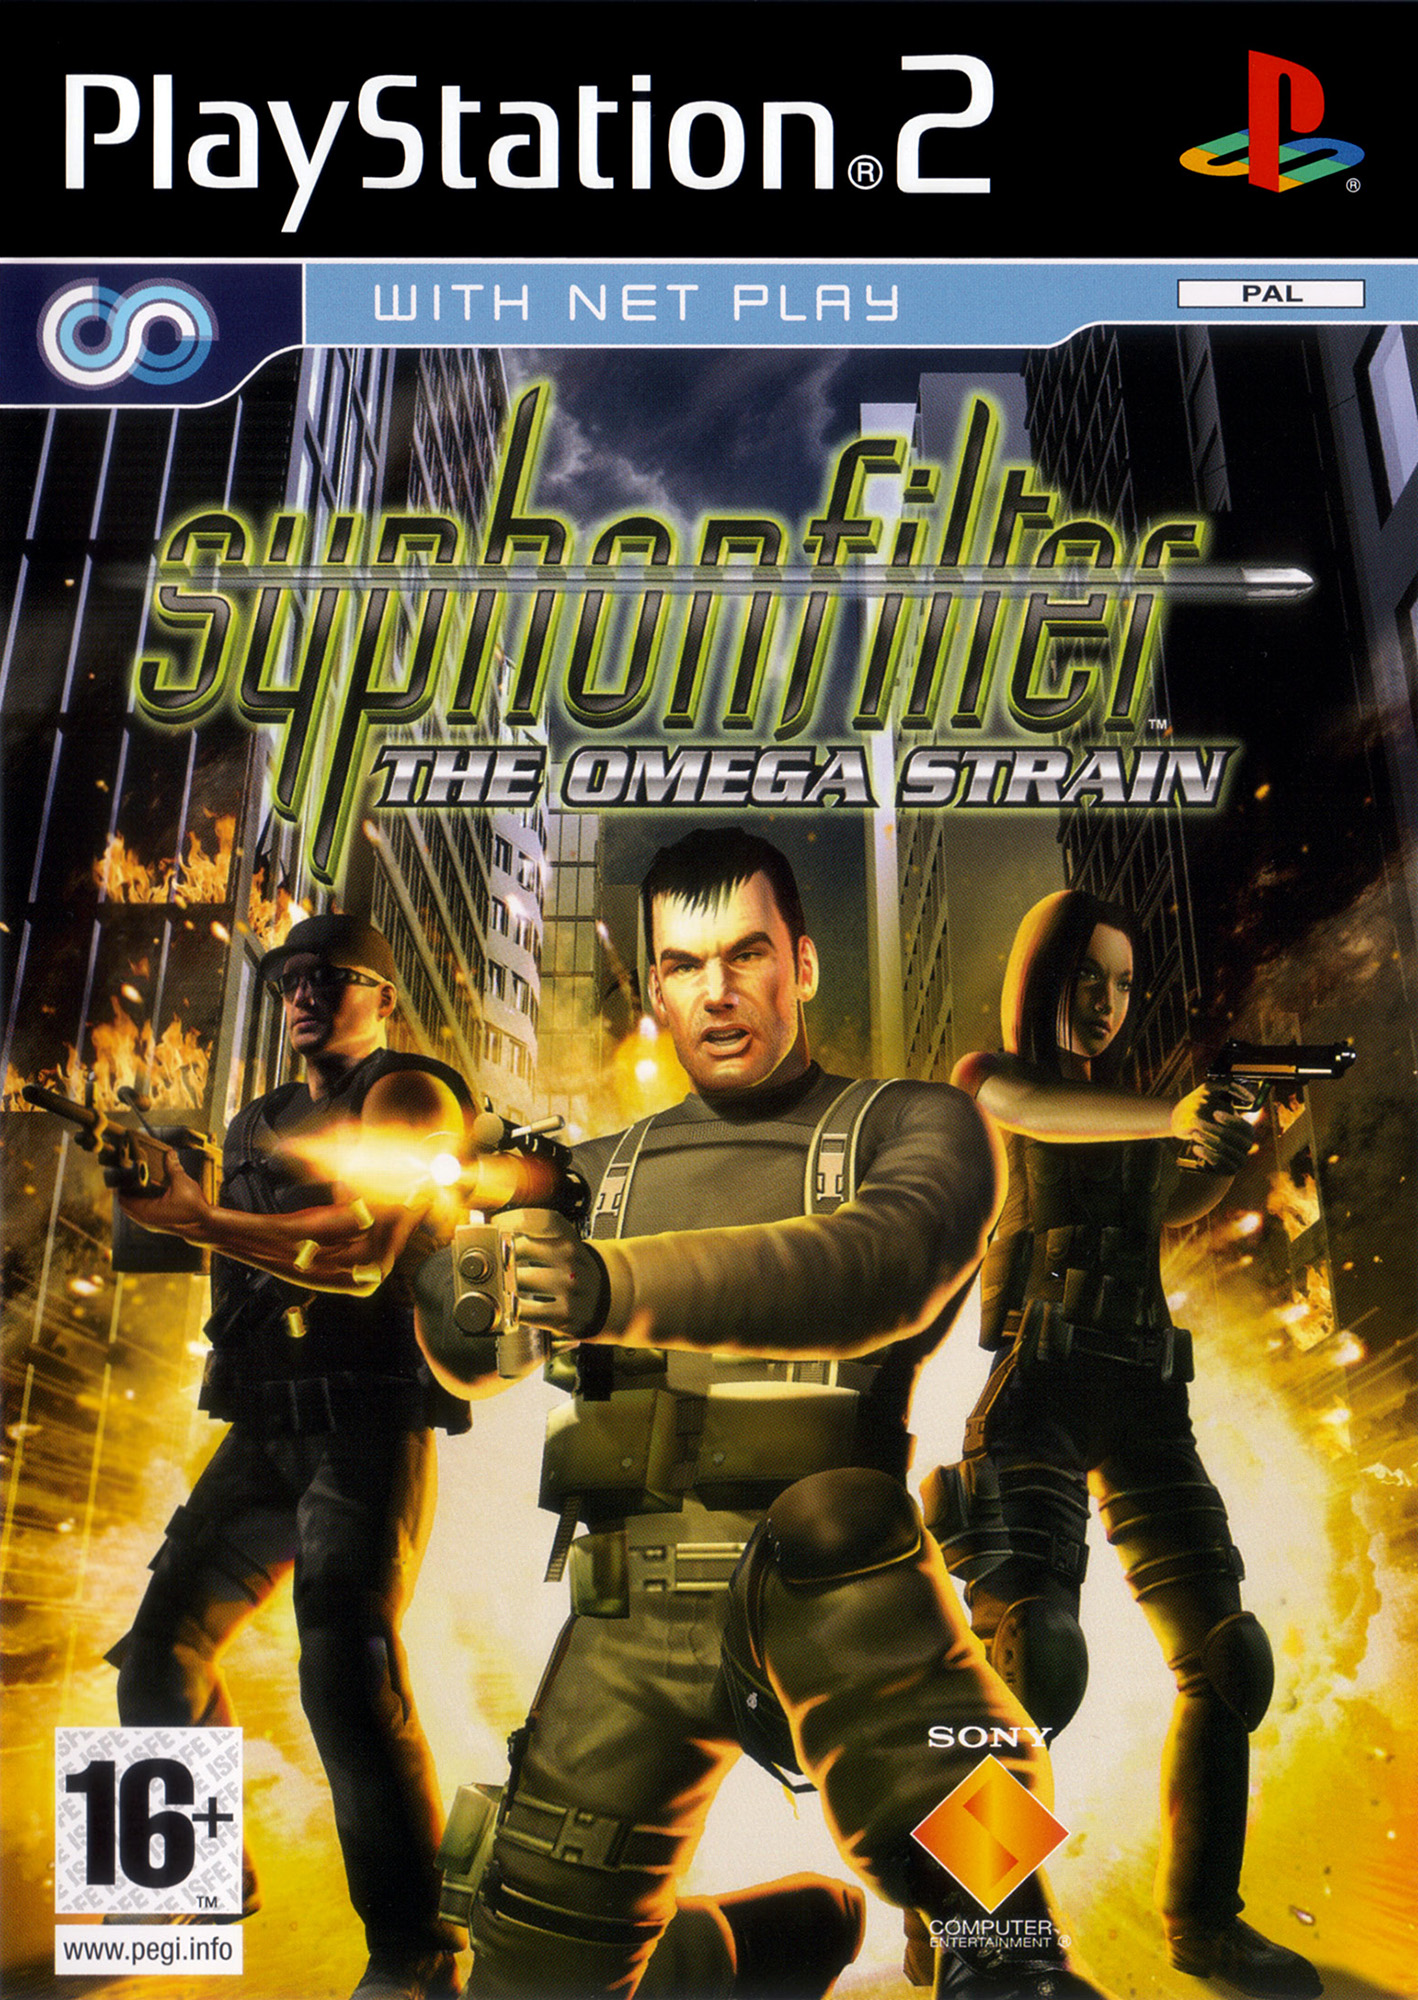 Syphonfilter The Omega Strain